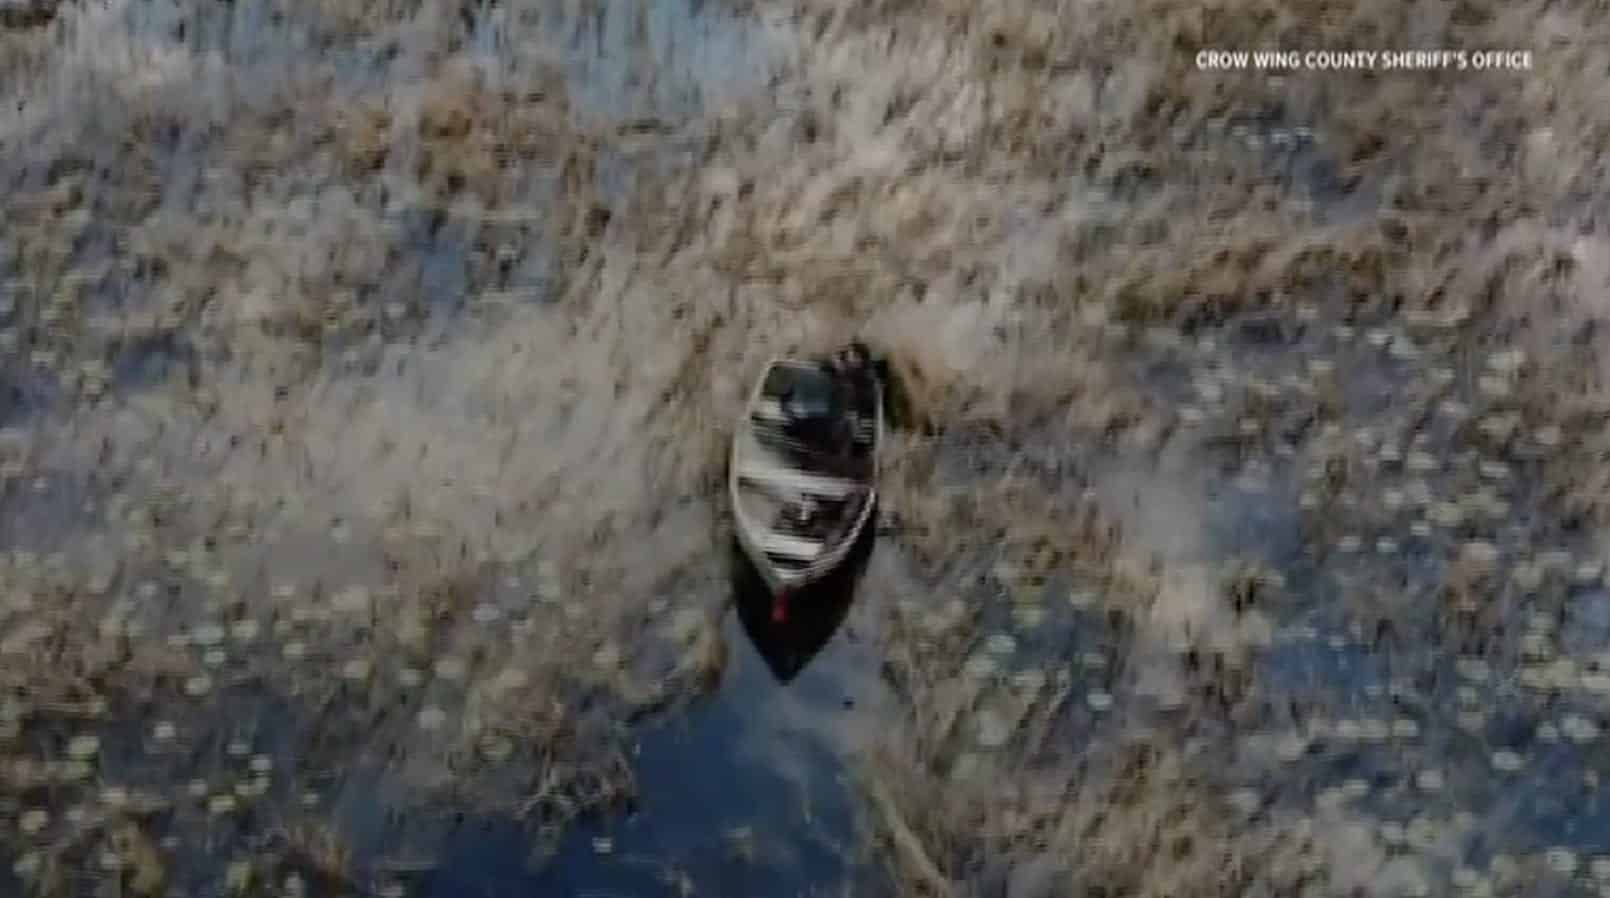 Drone rescued 60-year-old duck hunter who clung to boat for hours